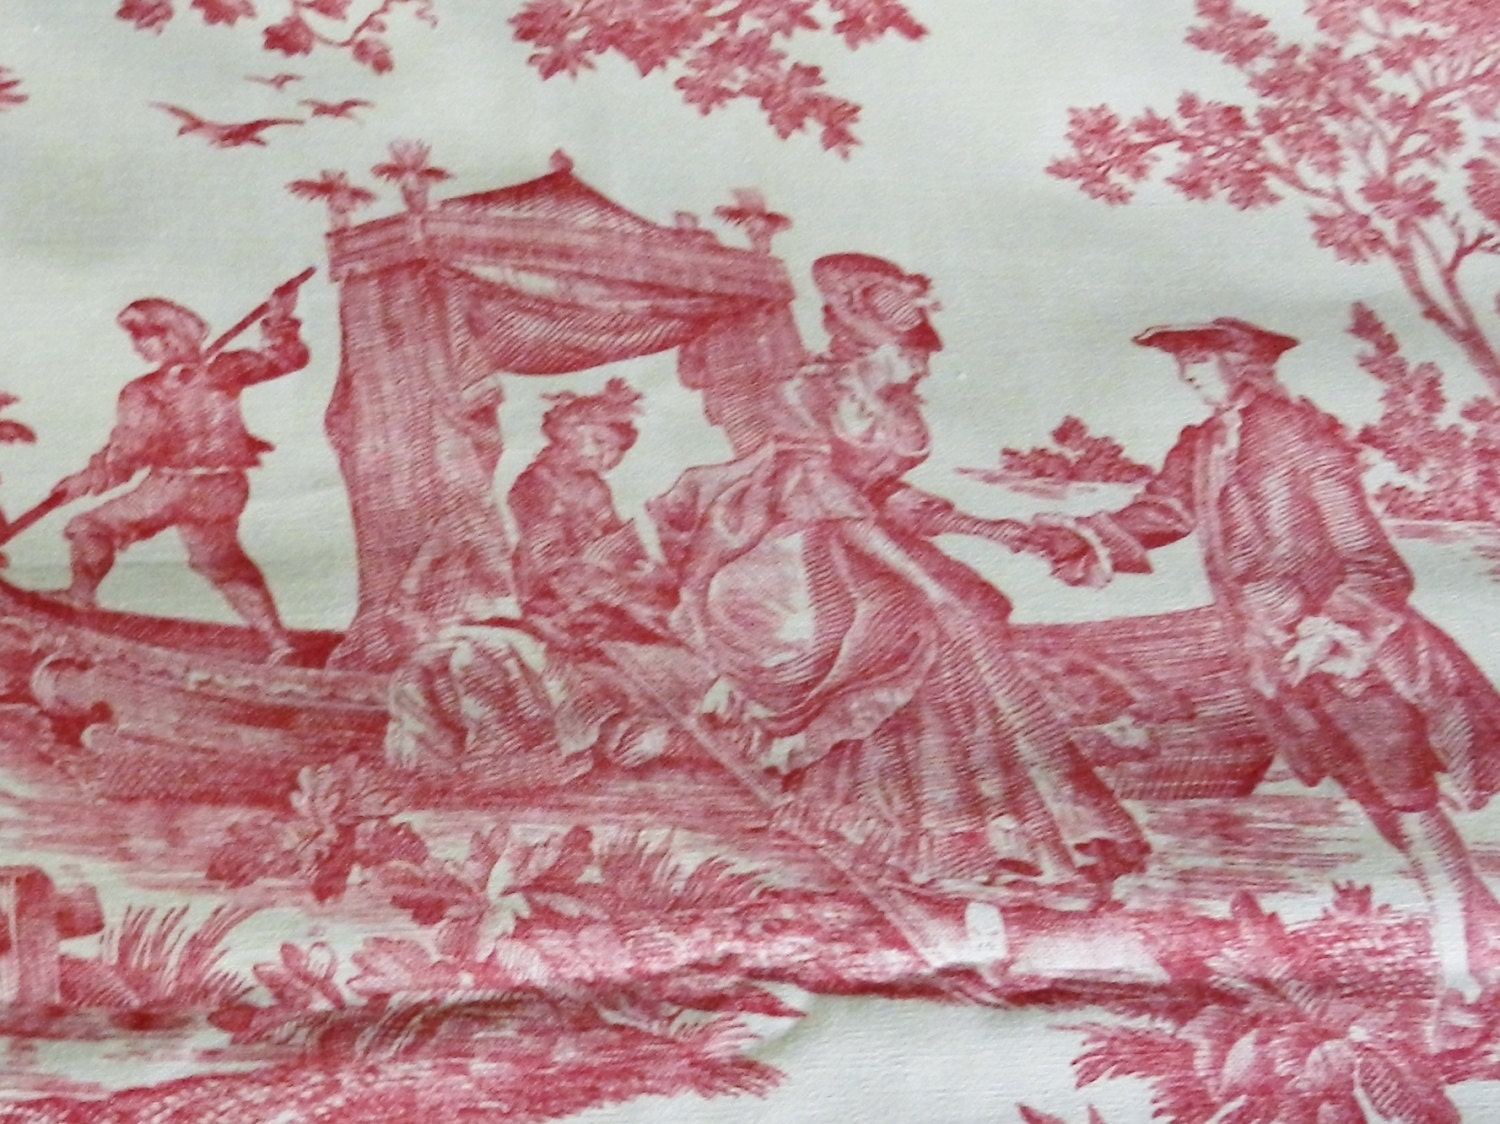 Red Toile Home Decor Fabric Yardage 375 yds